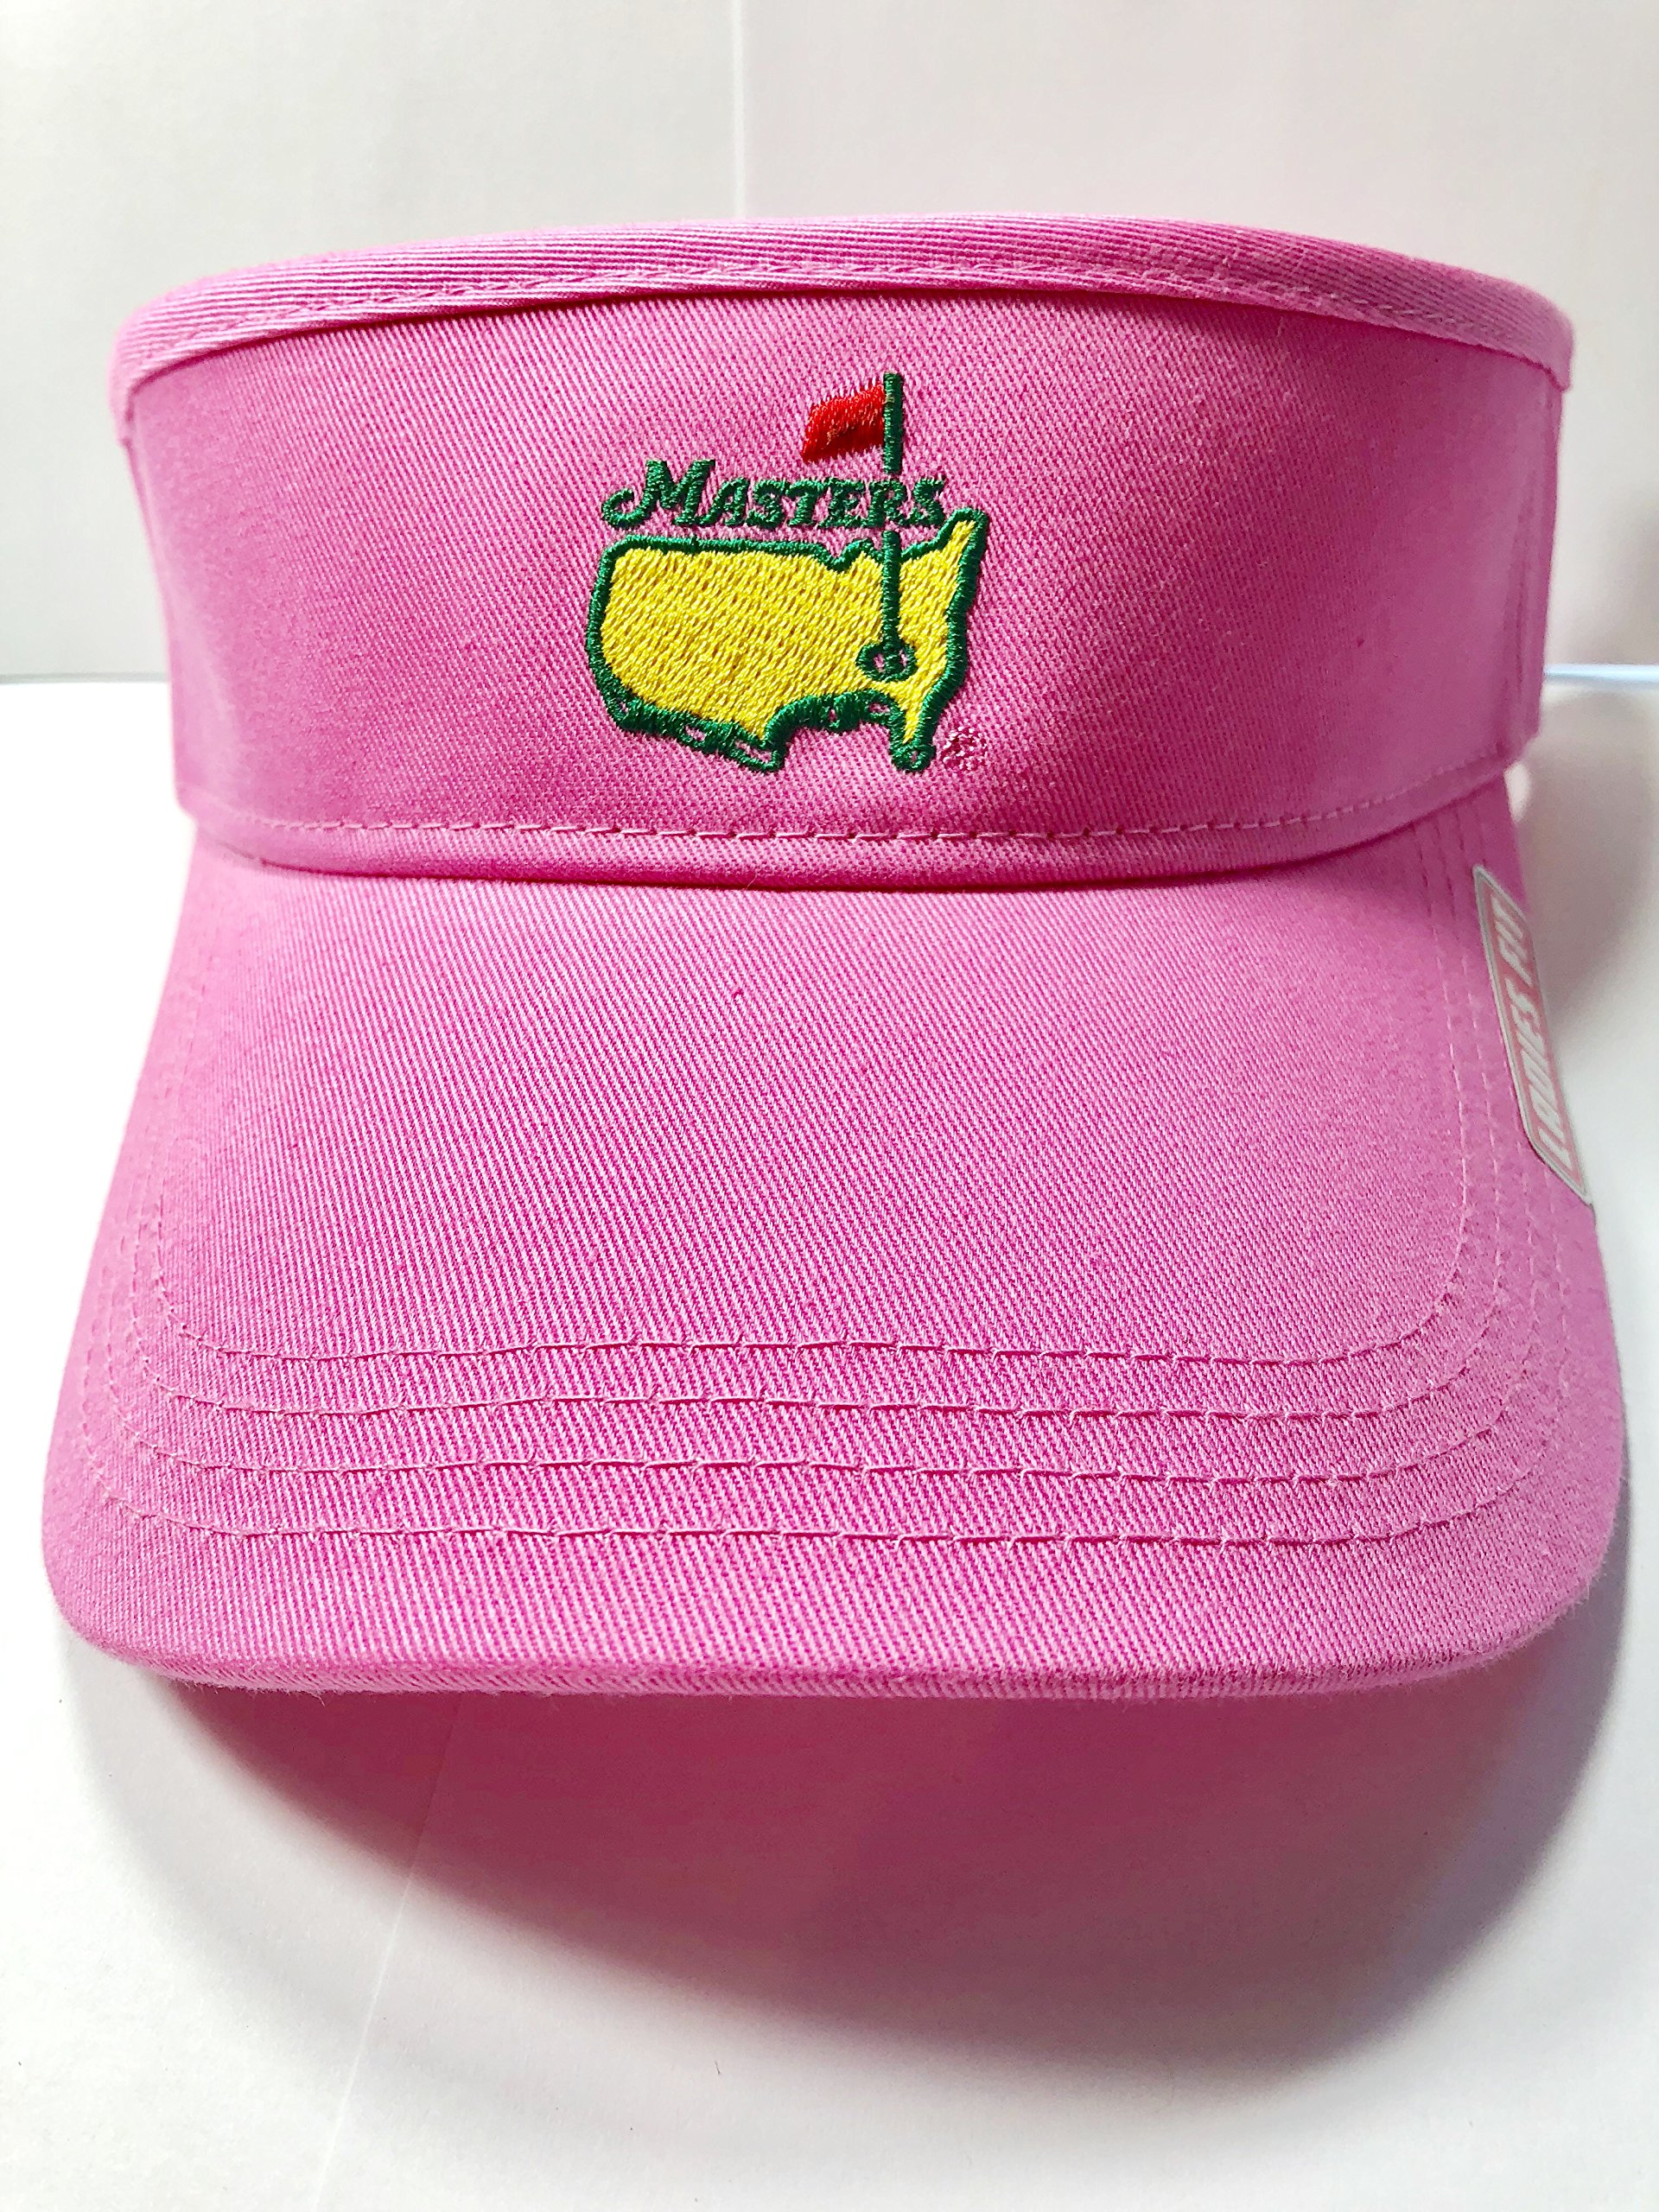 Masters Ladies Women's 2018 Golf Light Pink Visor Hat Adjustable Official Augusta National